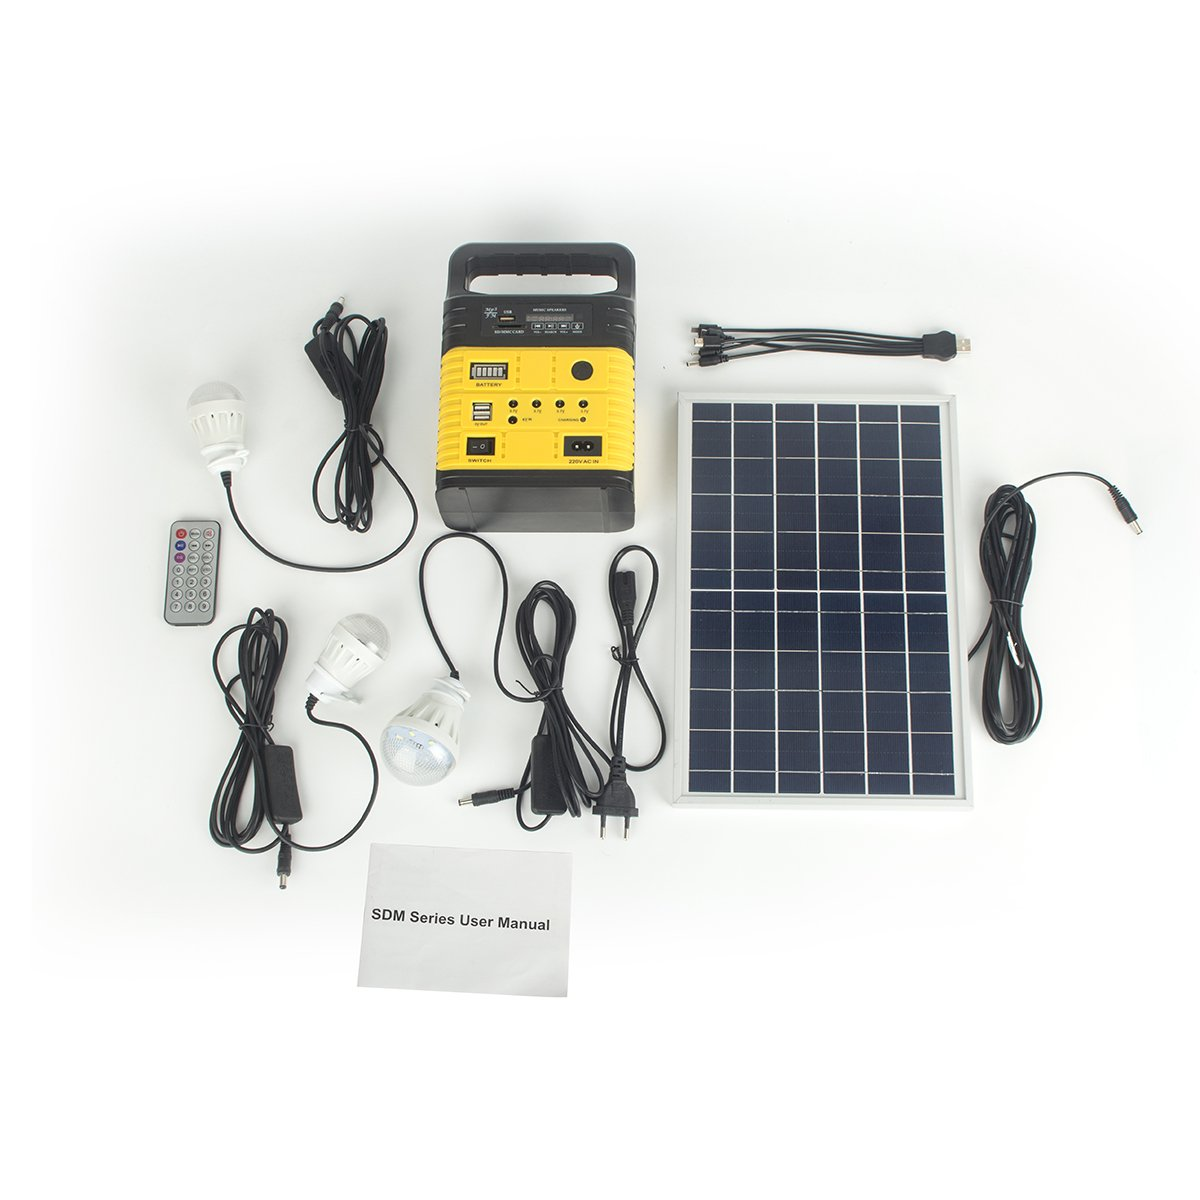 DODOING Solar Power Generator Portable kit, Solar Generator System for Home Garden Outdoor Camping, Power Mini DC6W Solar Panel 6V-9Ah Lead-acid Battery Charging LED Light USB Charger System by DODOING (Image #2)